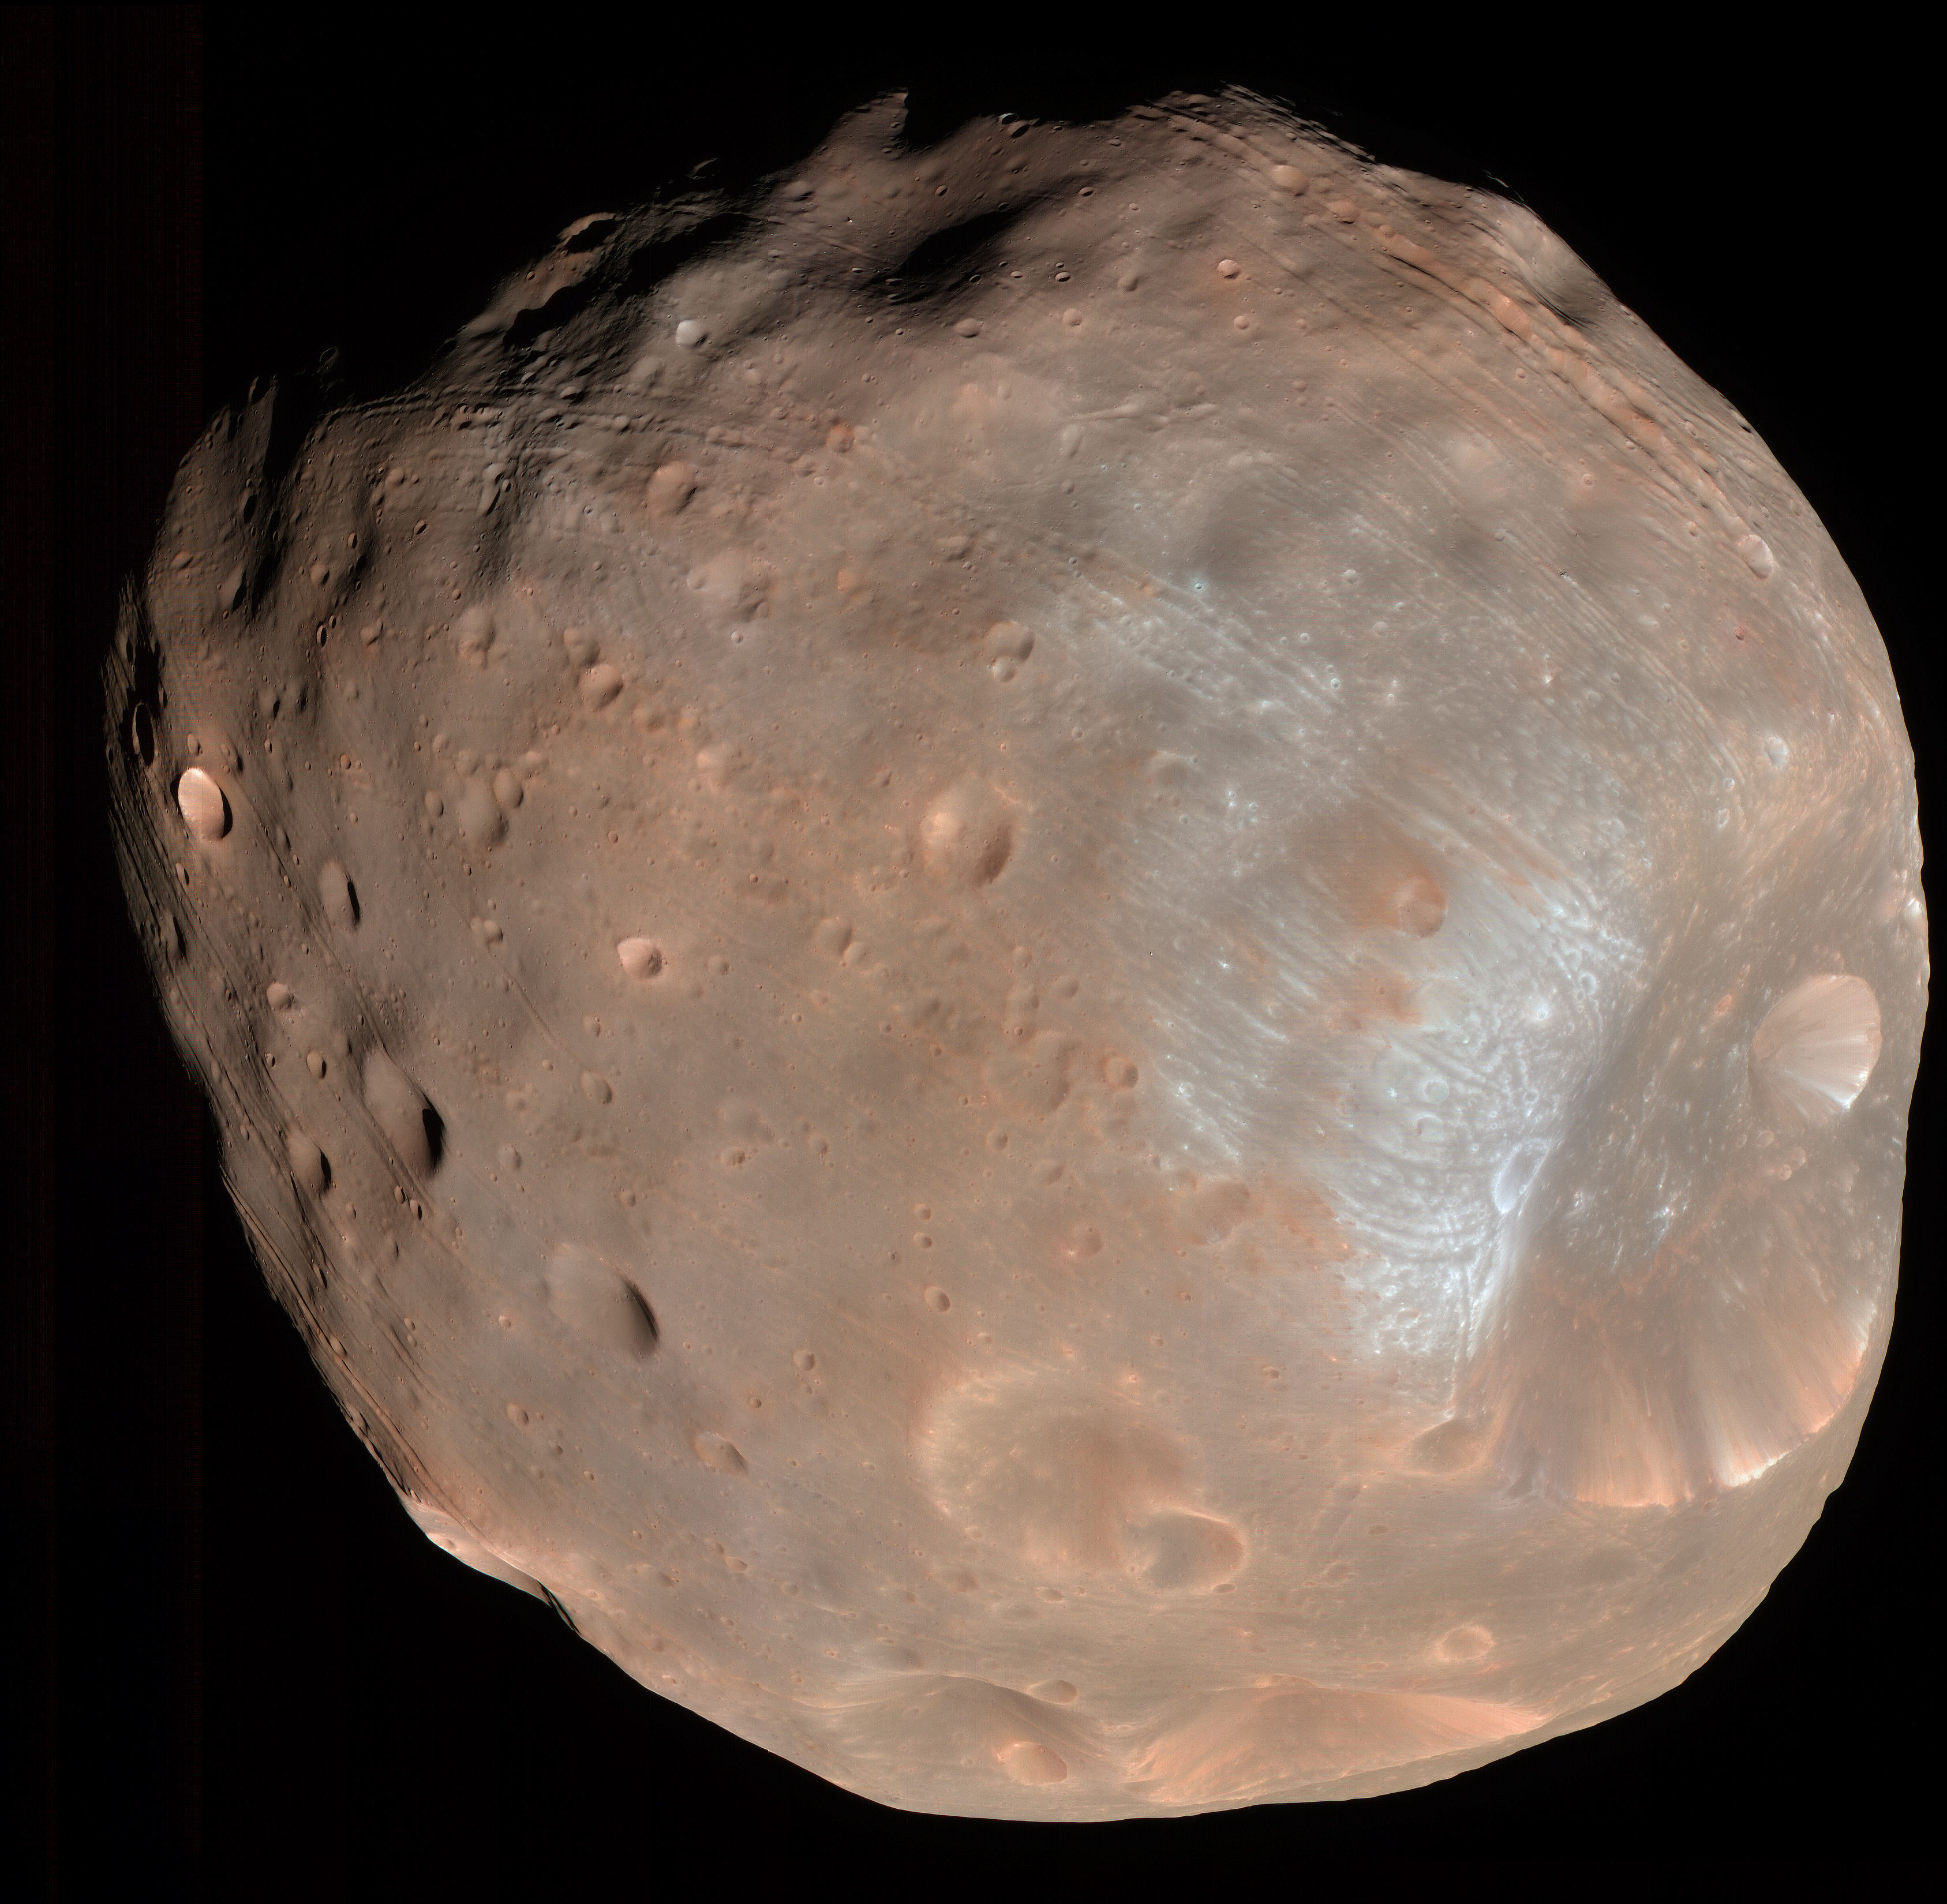 Weird Grooves On Mars' Moon Phobos Traced to Asteroids